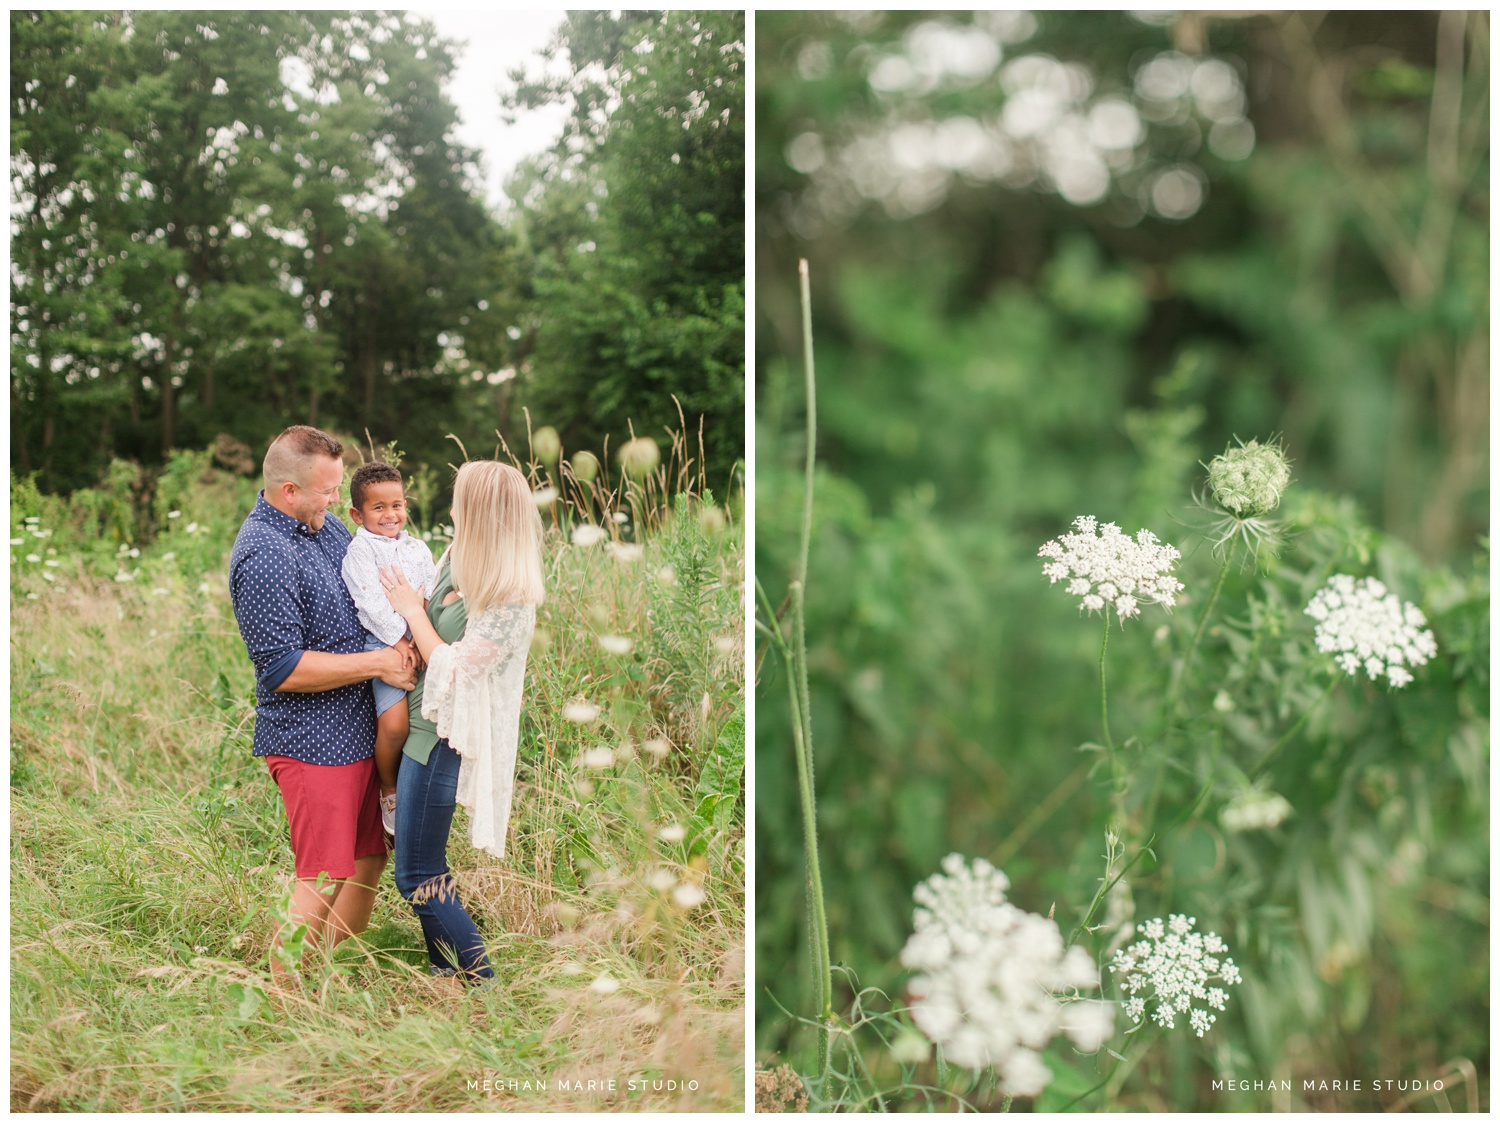 meghan marie studio ohio dayton troy photographer wedding photography engagement alex kaila family honeycreek preserve champagne downtown courthouse urban rural earth toned nature woods barn country city stone fountain elegant_0466.jpg